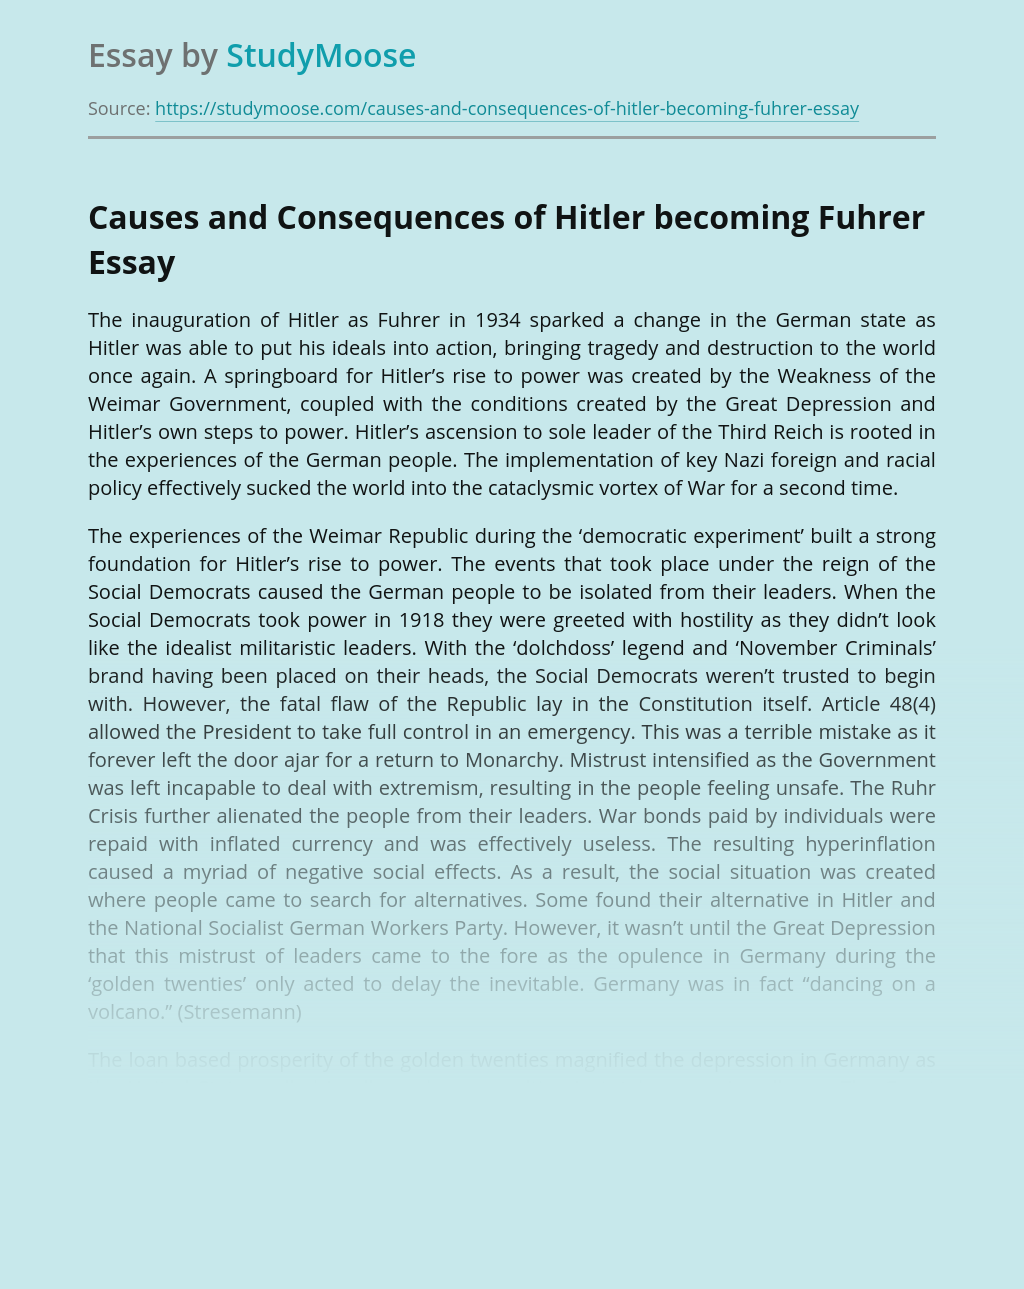 Causes and Consequences of Hitler becoming Fuhrer